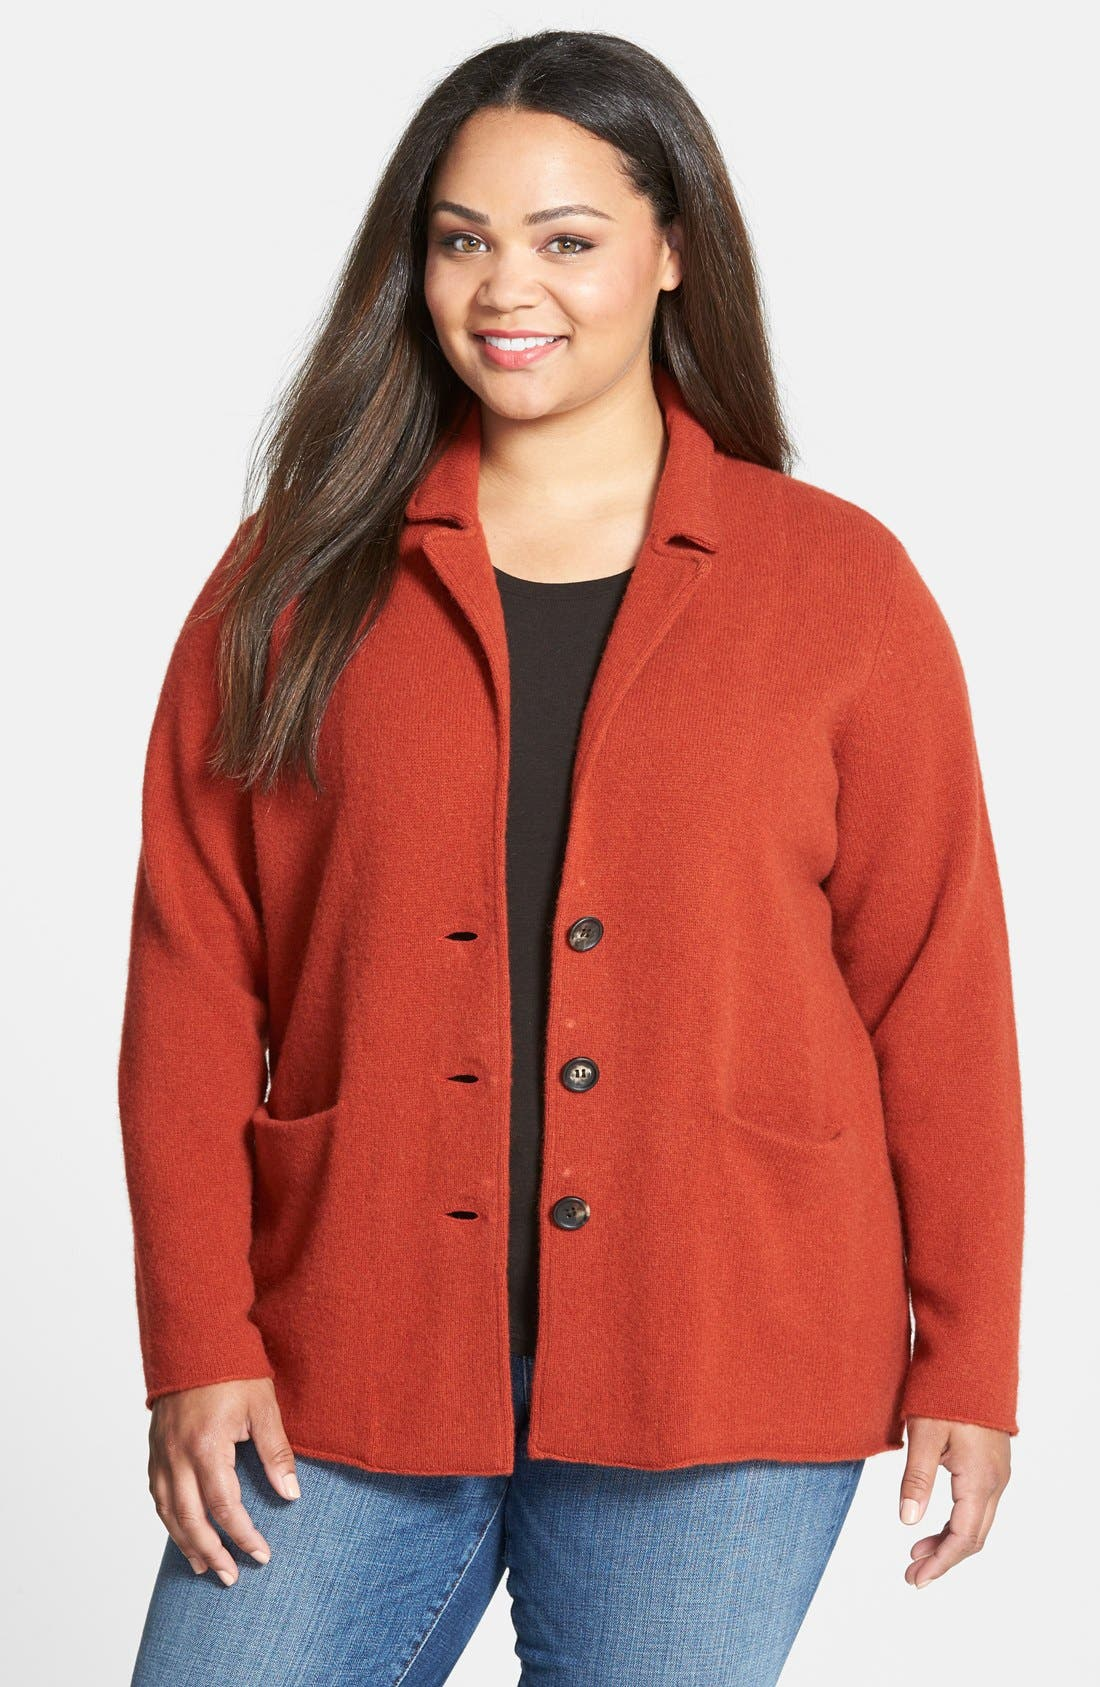 Main Image - Eileen Fisher Collar Wool Sweater Jacket (Plus Size)